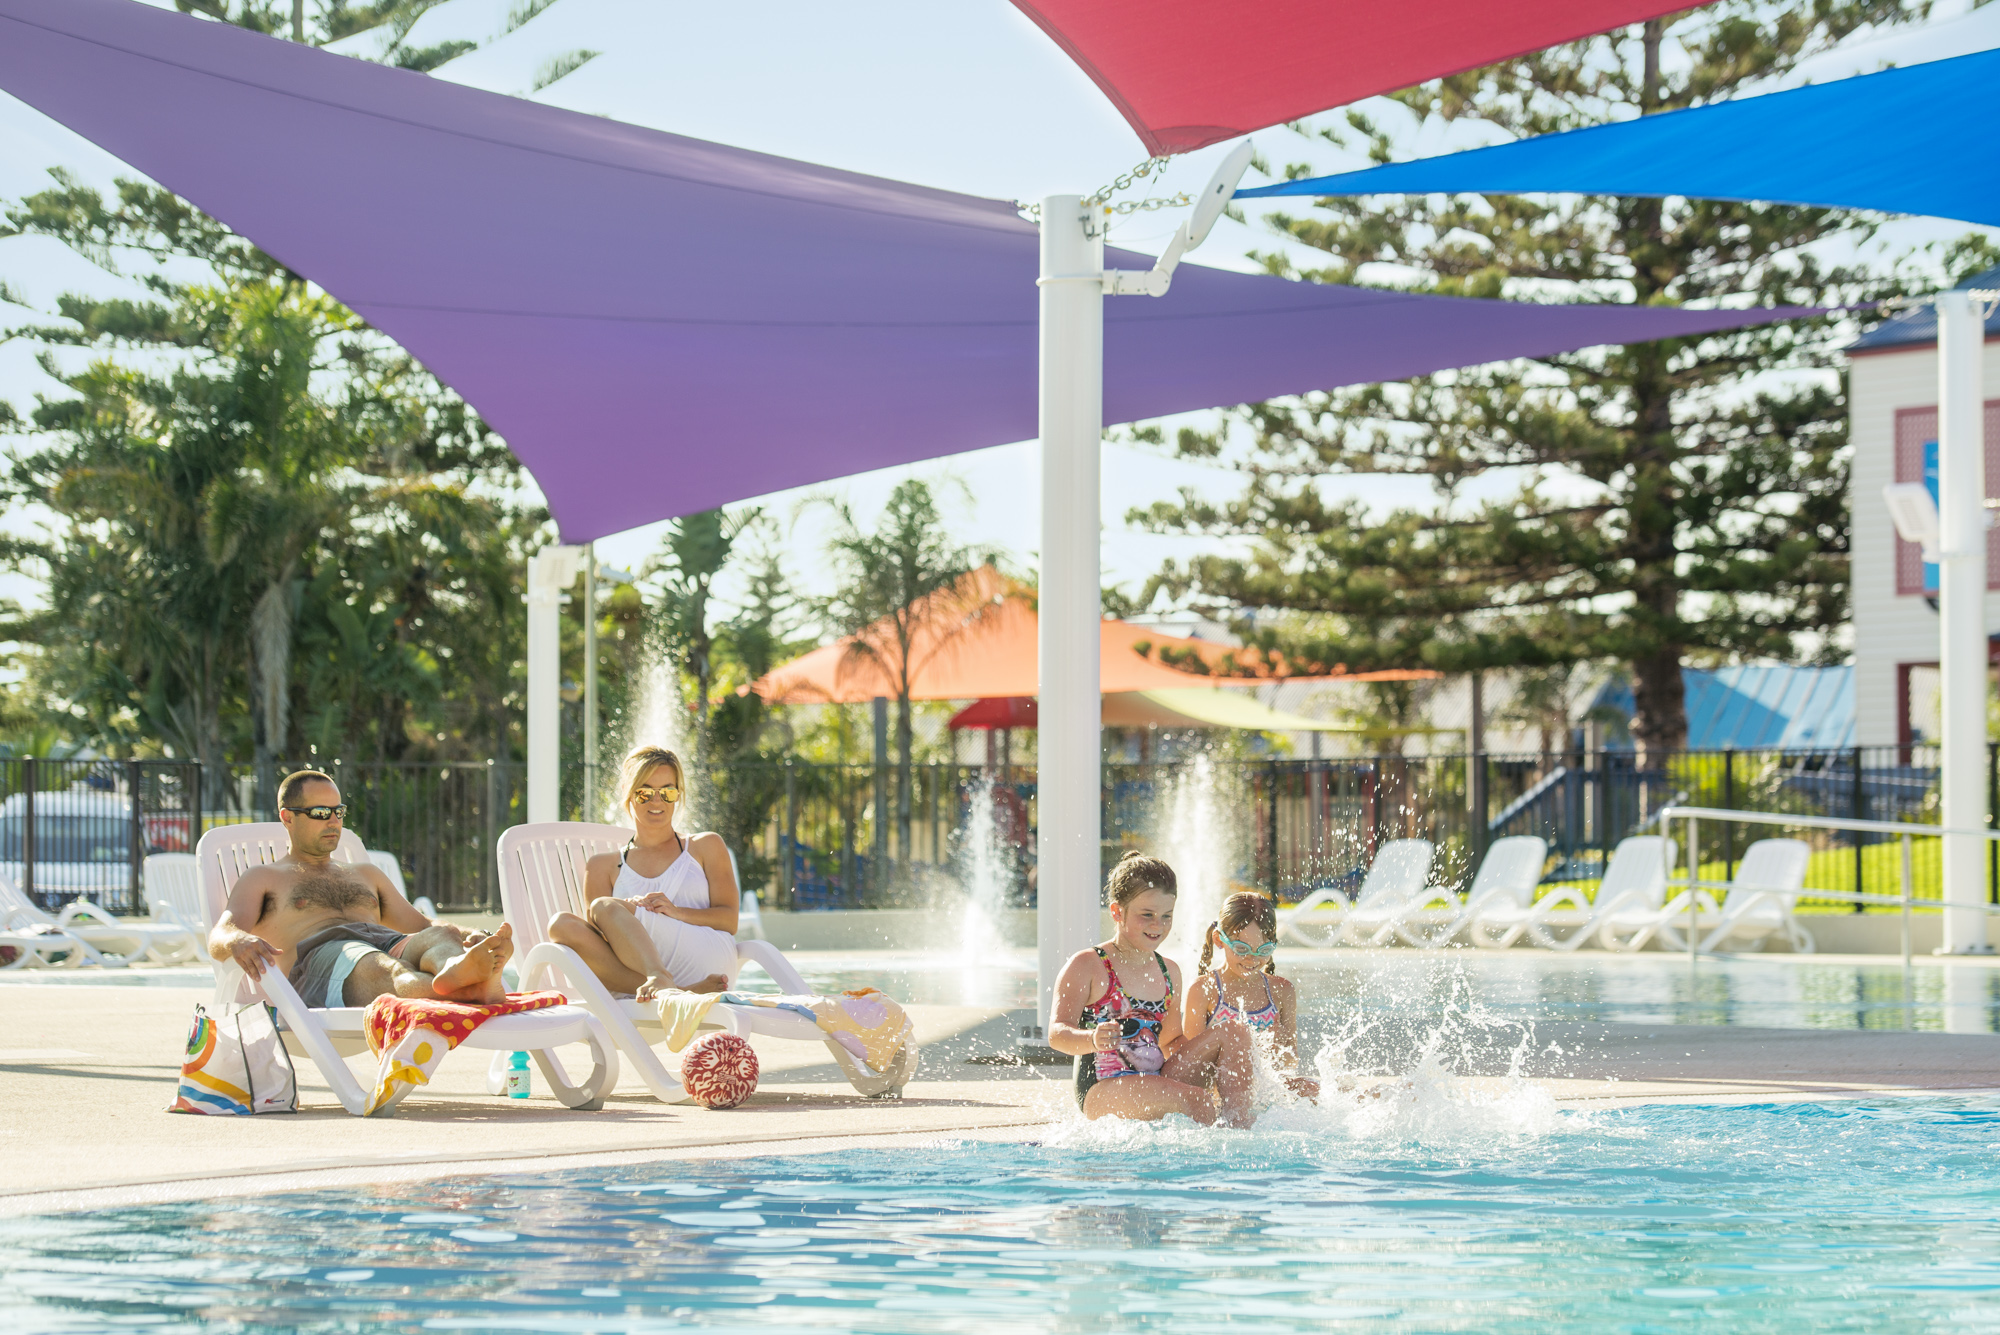 A photograph I took recently for Adelaide Shores of their new pool area. On shoot, I interacted with 'mum and dad'plus the two children to get the look we were after. Three different families, none had ever met each other before. None with modeling experience. I think they did well.In retouching, I had to add blue sky, lighten bodies, remove distractions etc along with all the usual adjustments ensuring colour, contrast and horizon line are all correct.